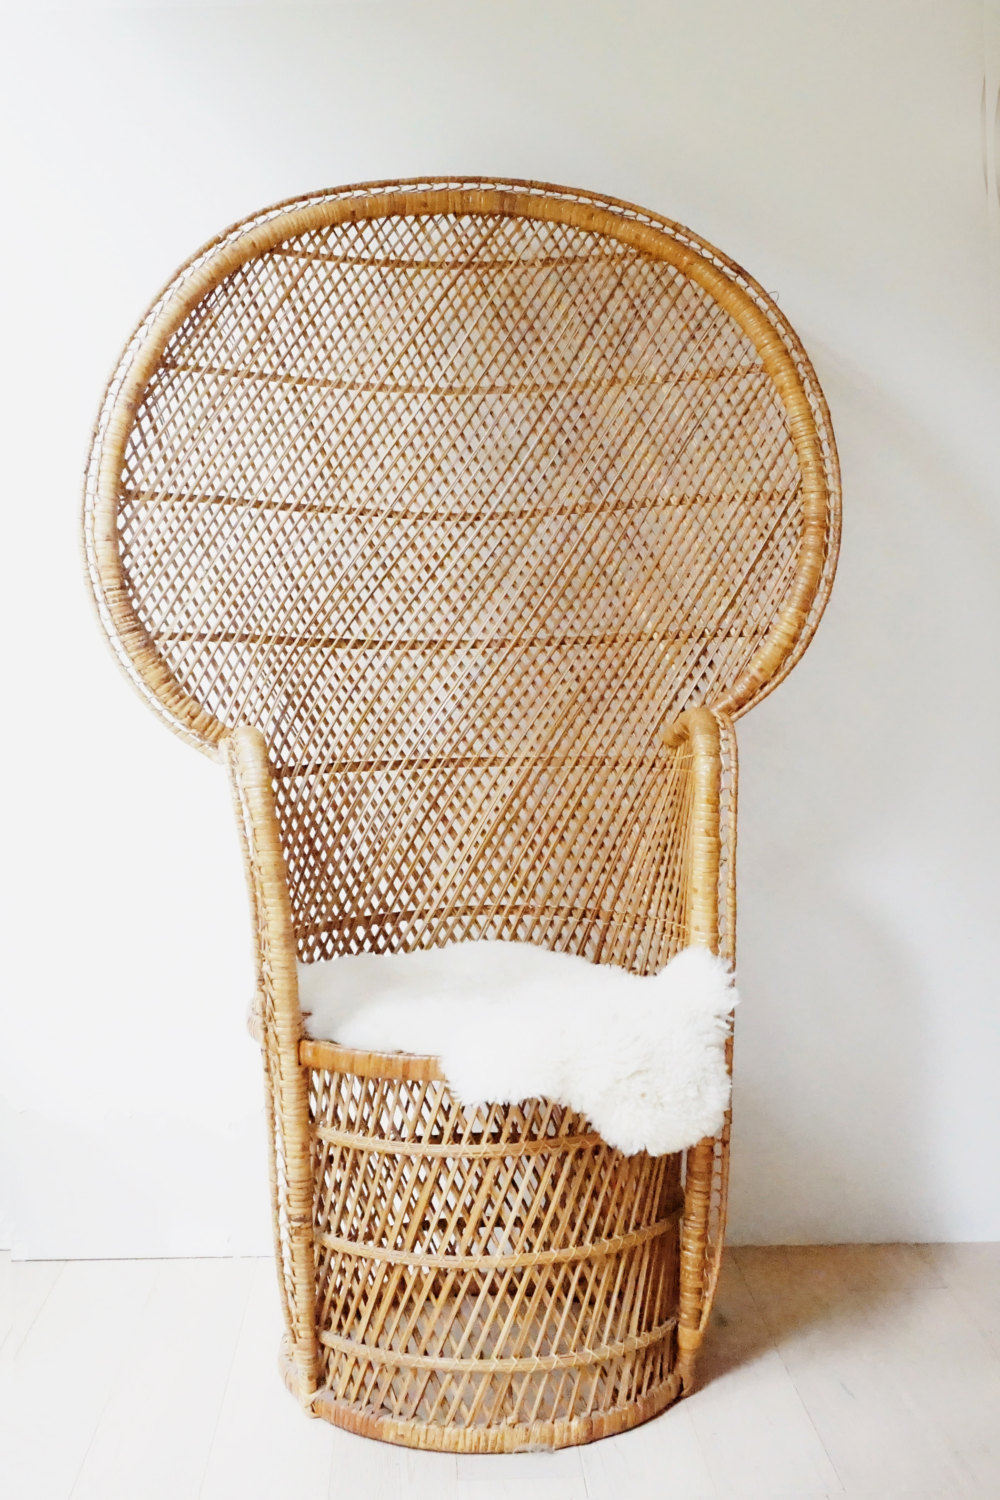 Exceptional Wicker Peacock Chair #21 - Wicker Peacock Chair